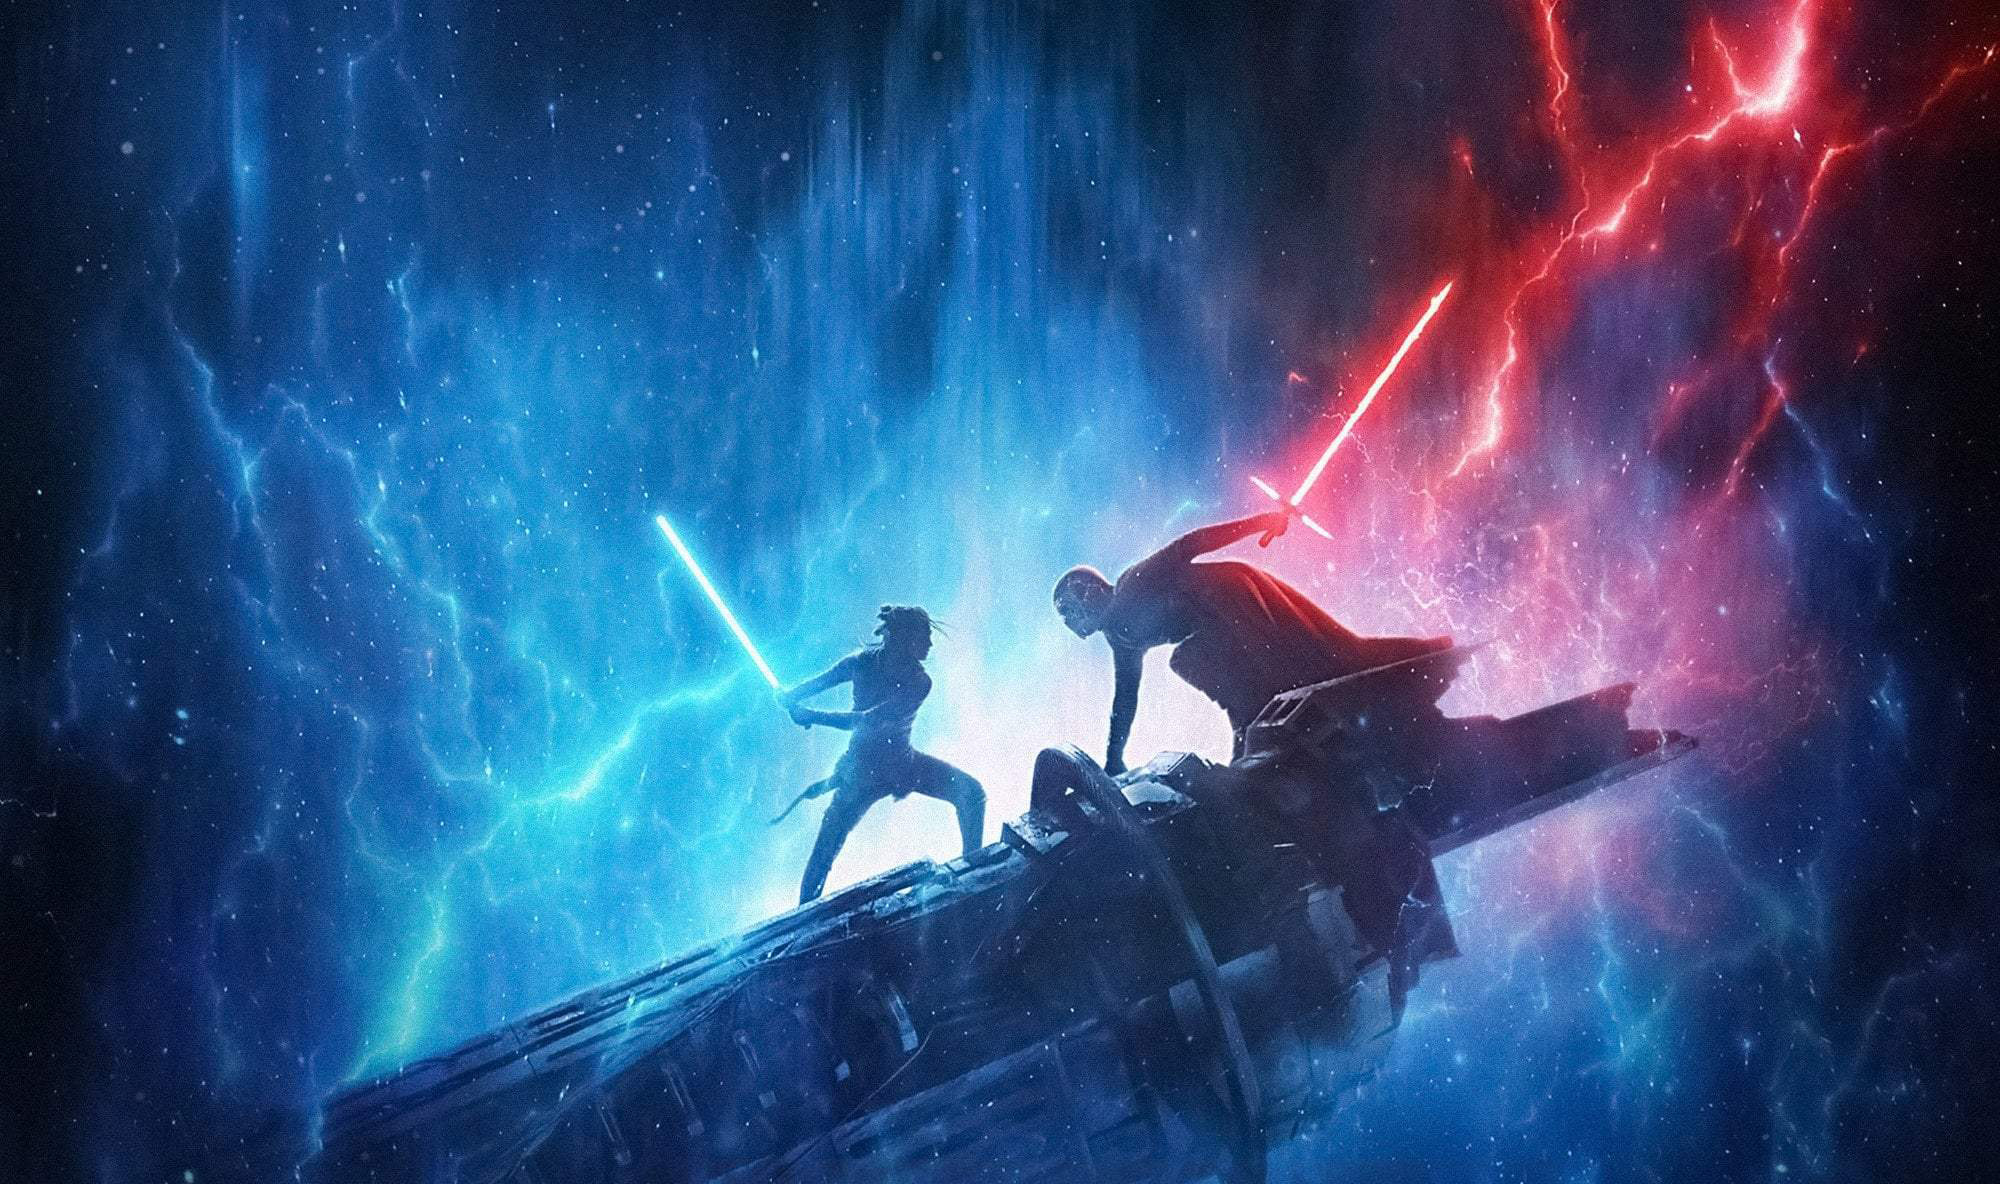 How The Rise of Skywalker fixes the mistakes from The Last Jedi